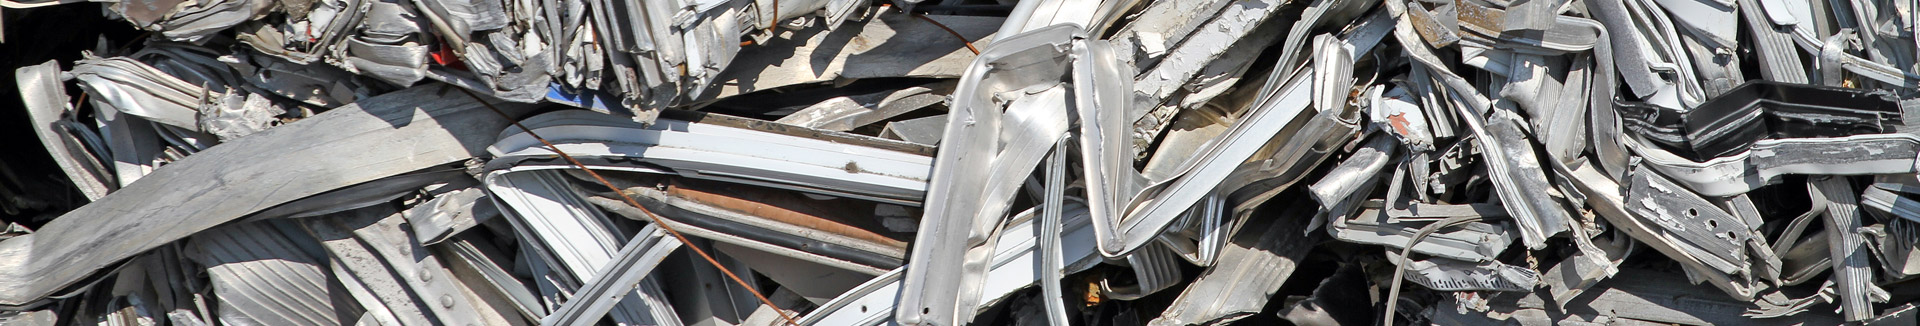 Cash for scrap metal recycling services in Swanton, MD